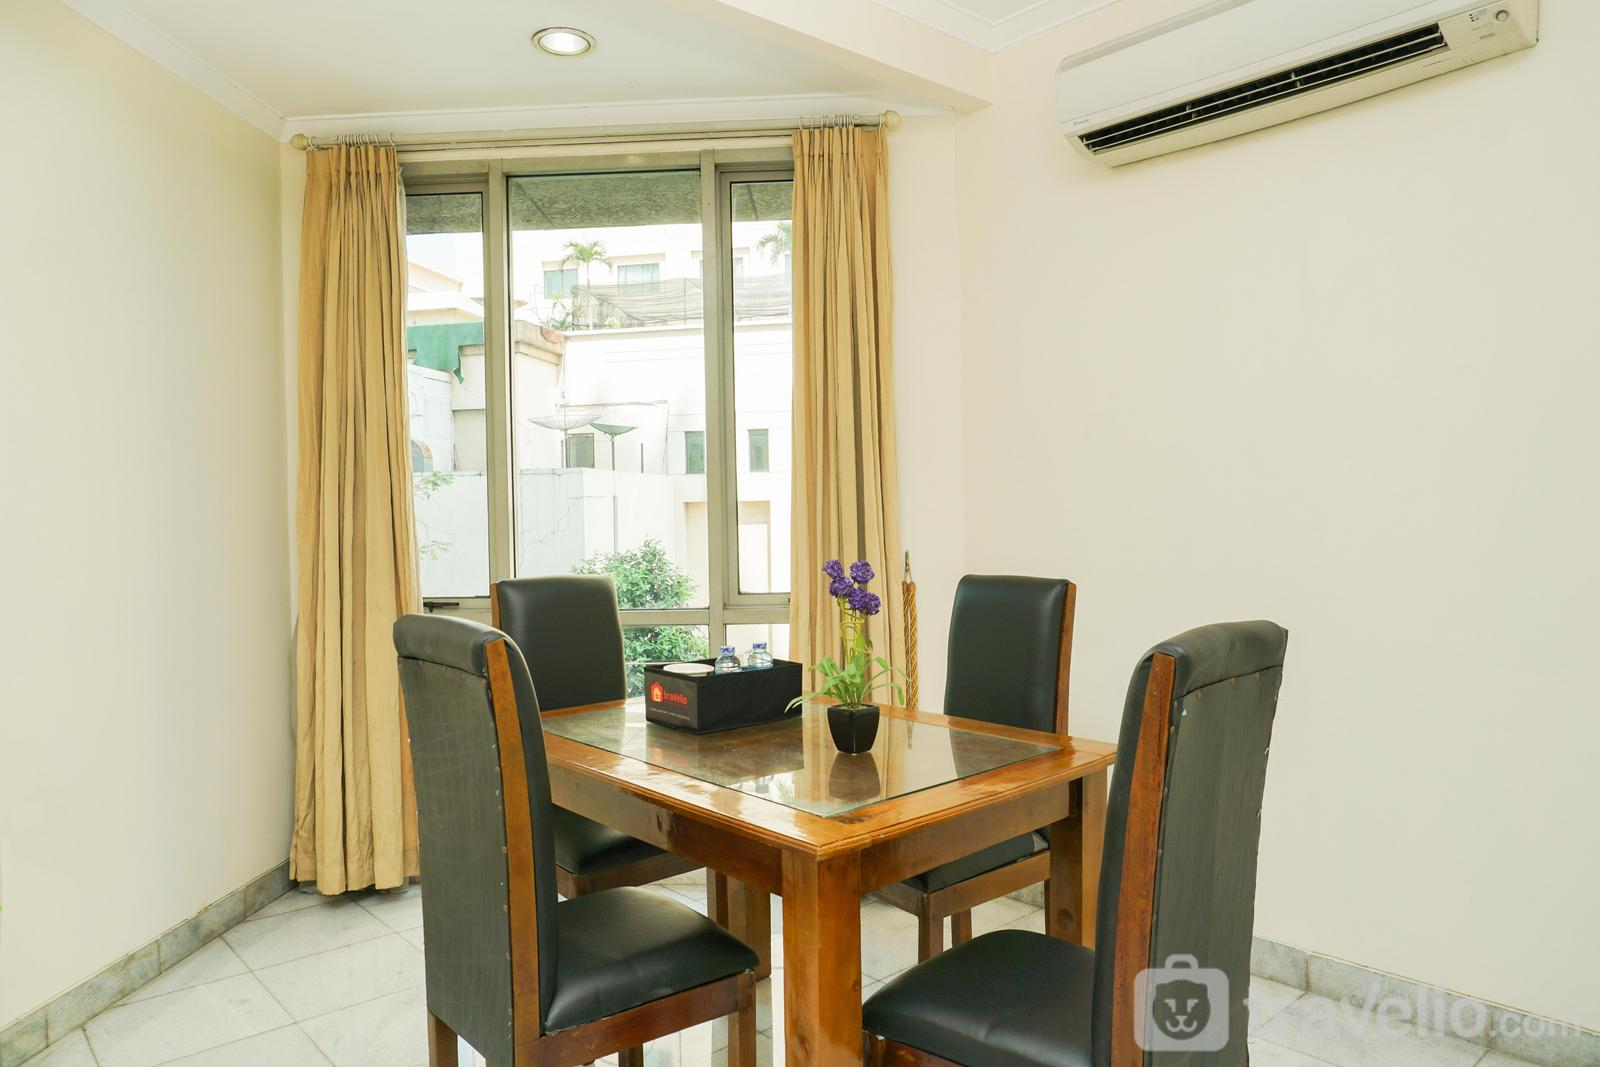 Mitra Oasis (Allson) Senen - Spacious 1BR Apartment at Mitra Oasis Senen By Travelio